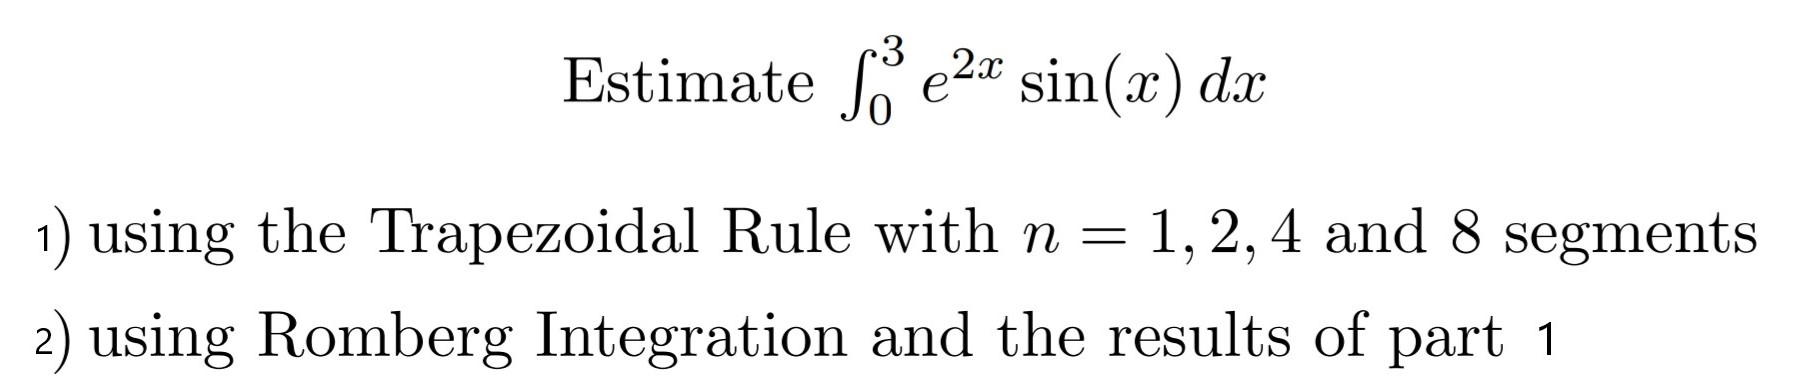 3 Estimate e2* sin(x) dx 1 using the Trapezoidal Rule with n = 1,2,4 and 8 segments 2) using Romberg Integration and the results of part 1